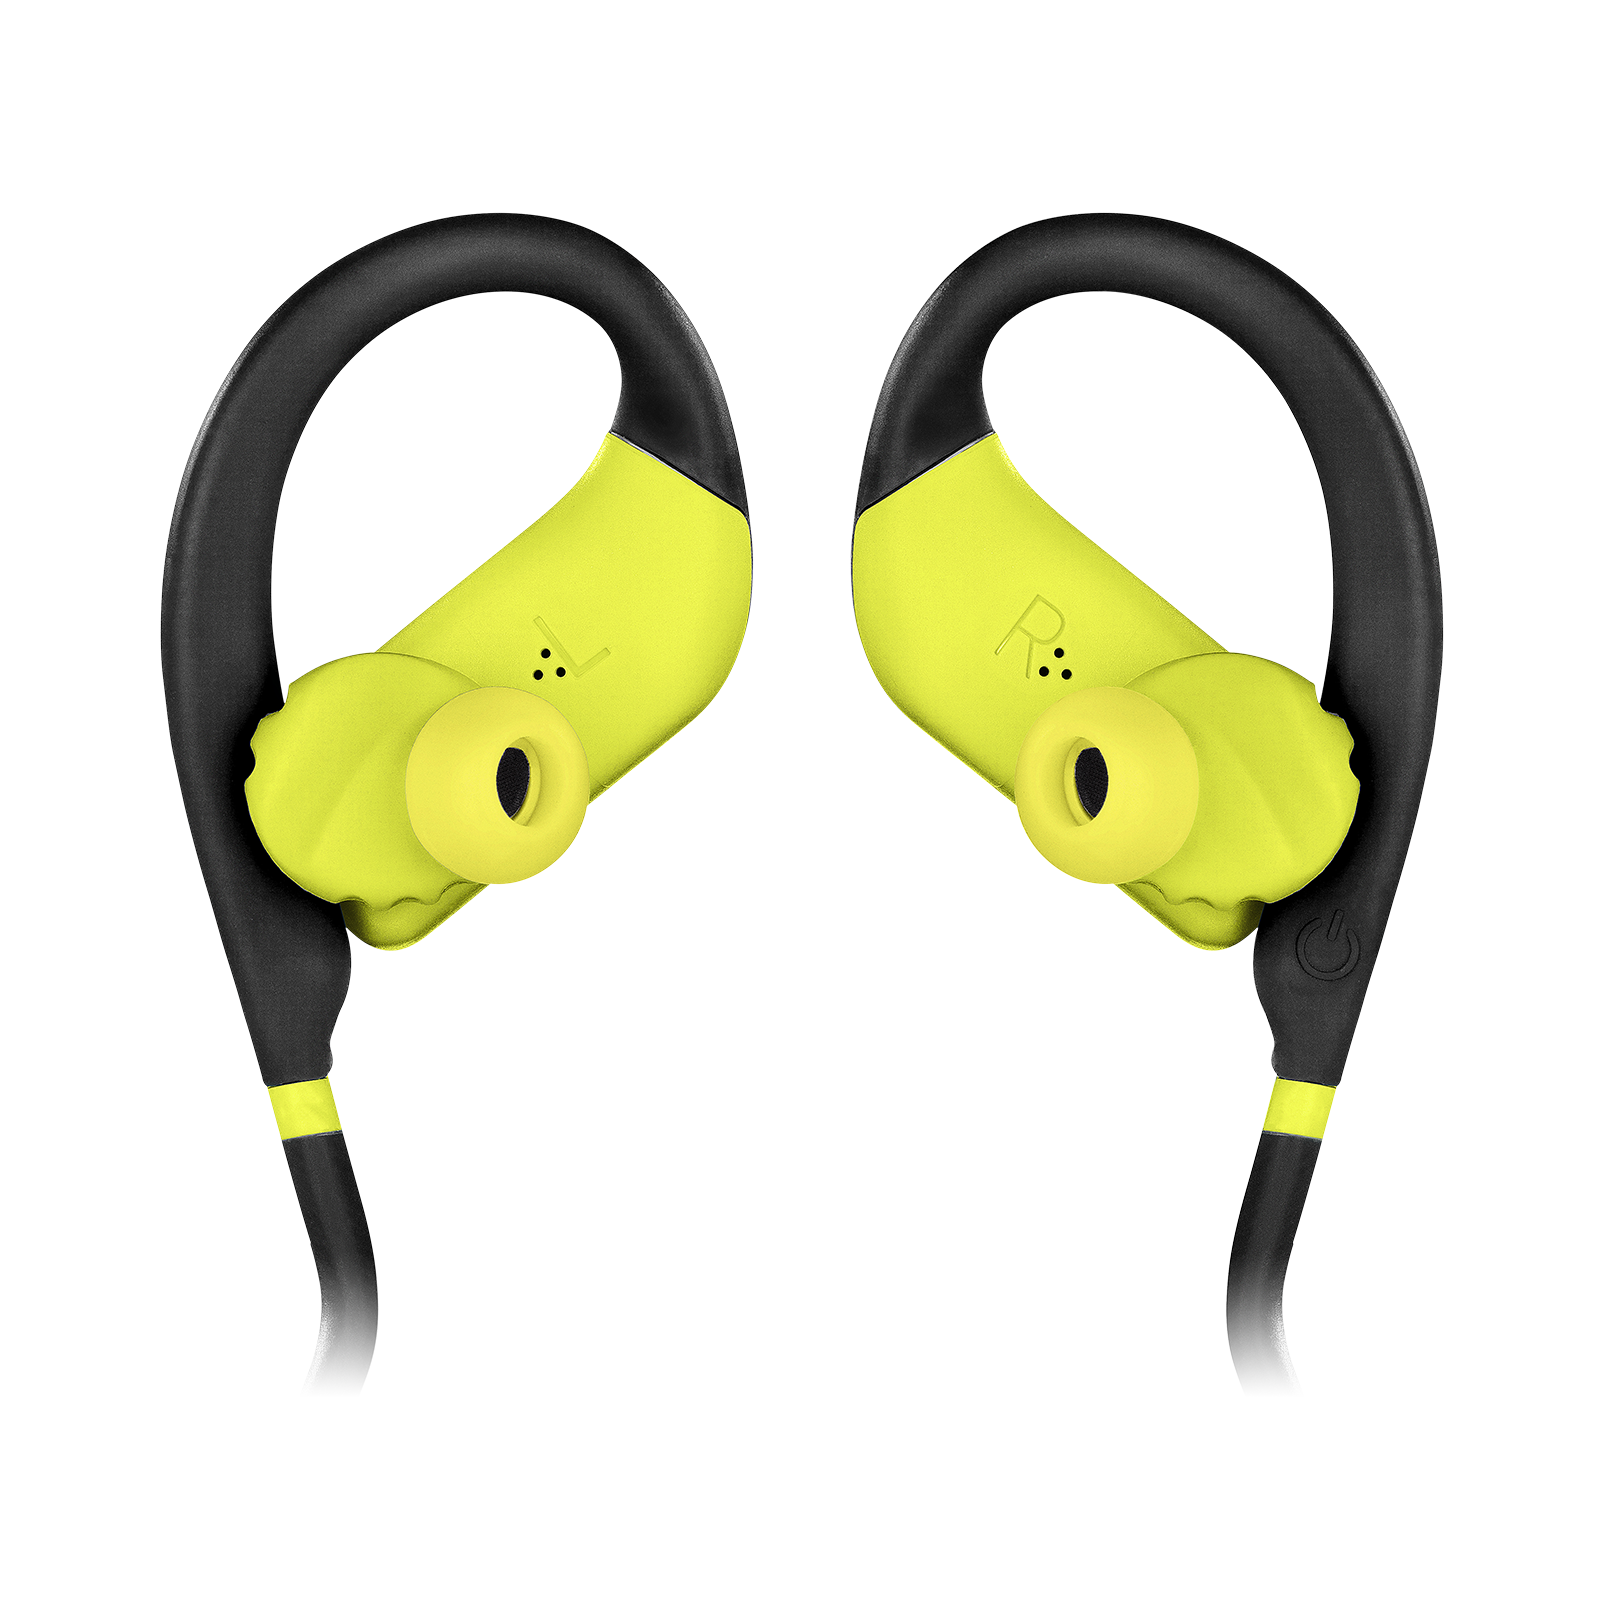 JBL Endurance DIVE - Yellow - Waterproof Wireless In-Ear Sport Headphones with MP3 Player - Detailshot 1